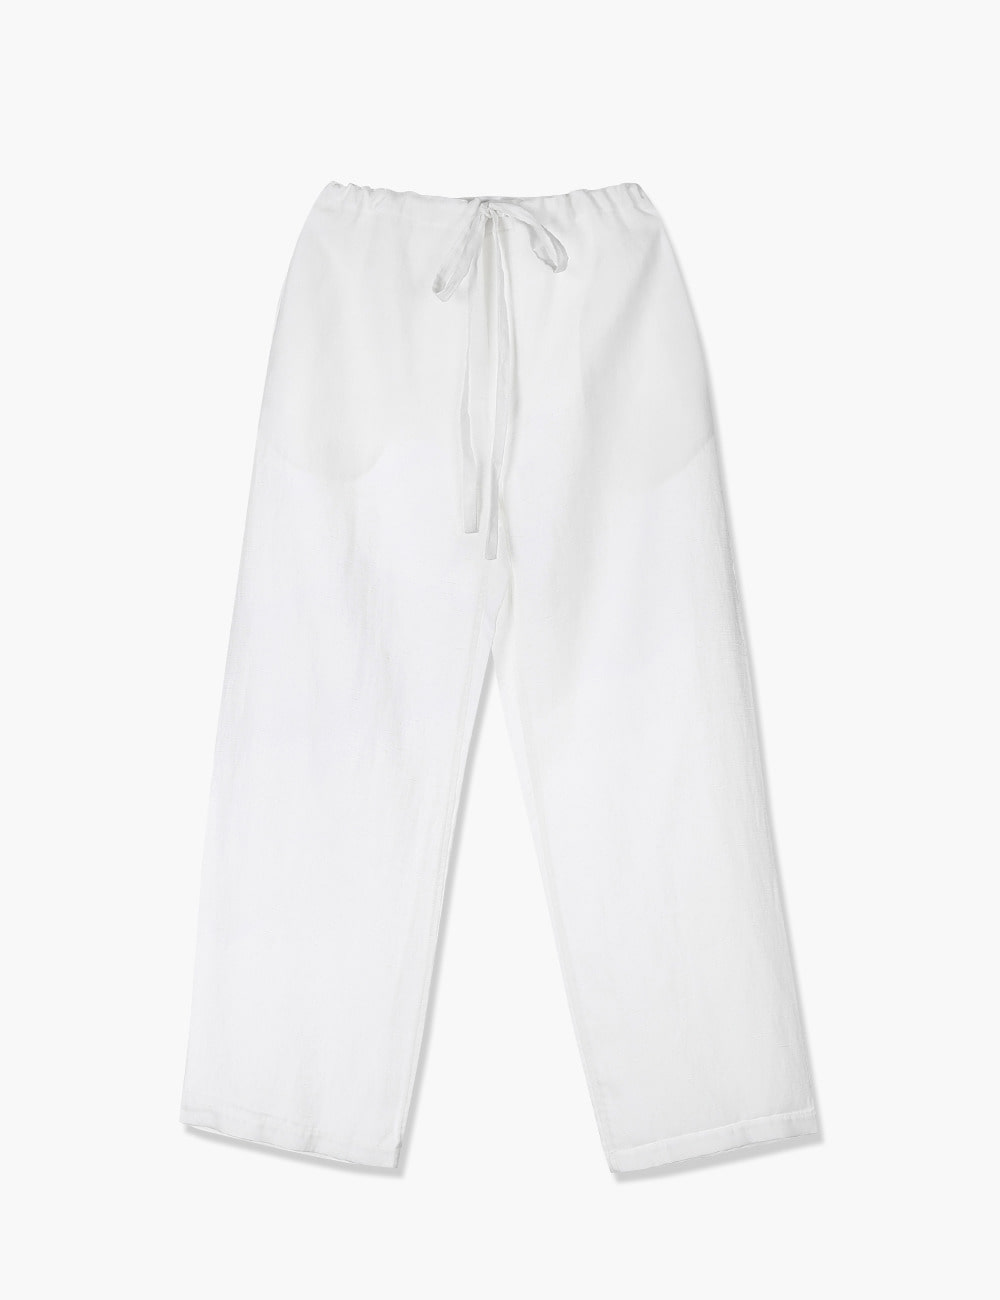 DRAWSTRING PANTS (WHITE)